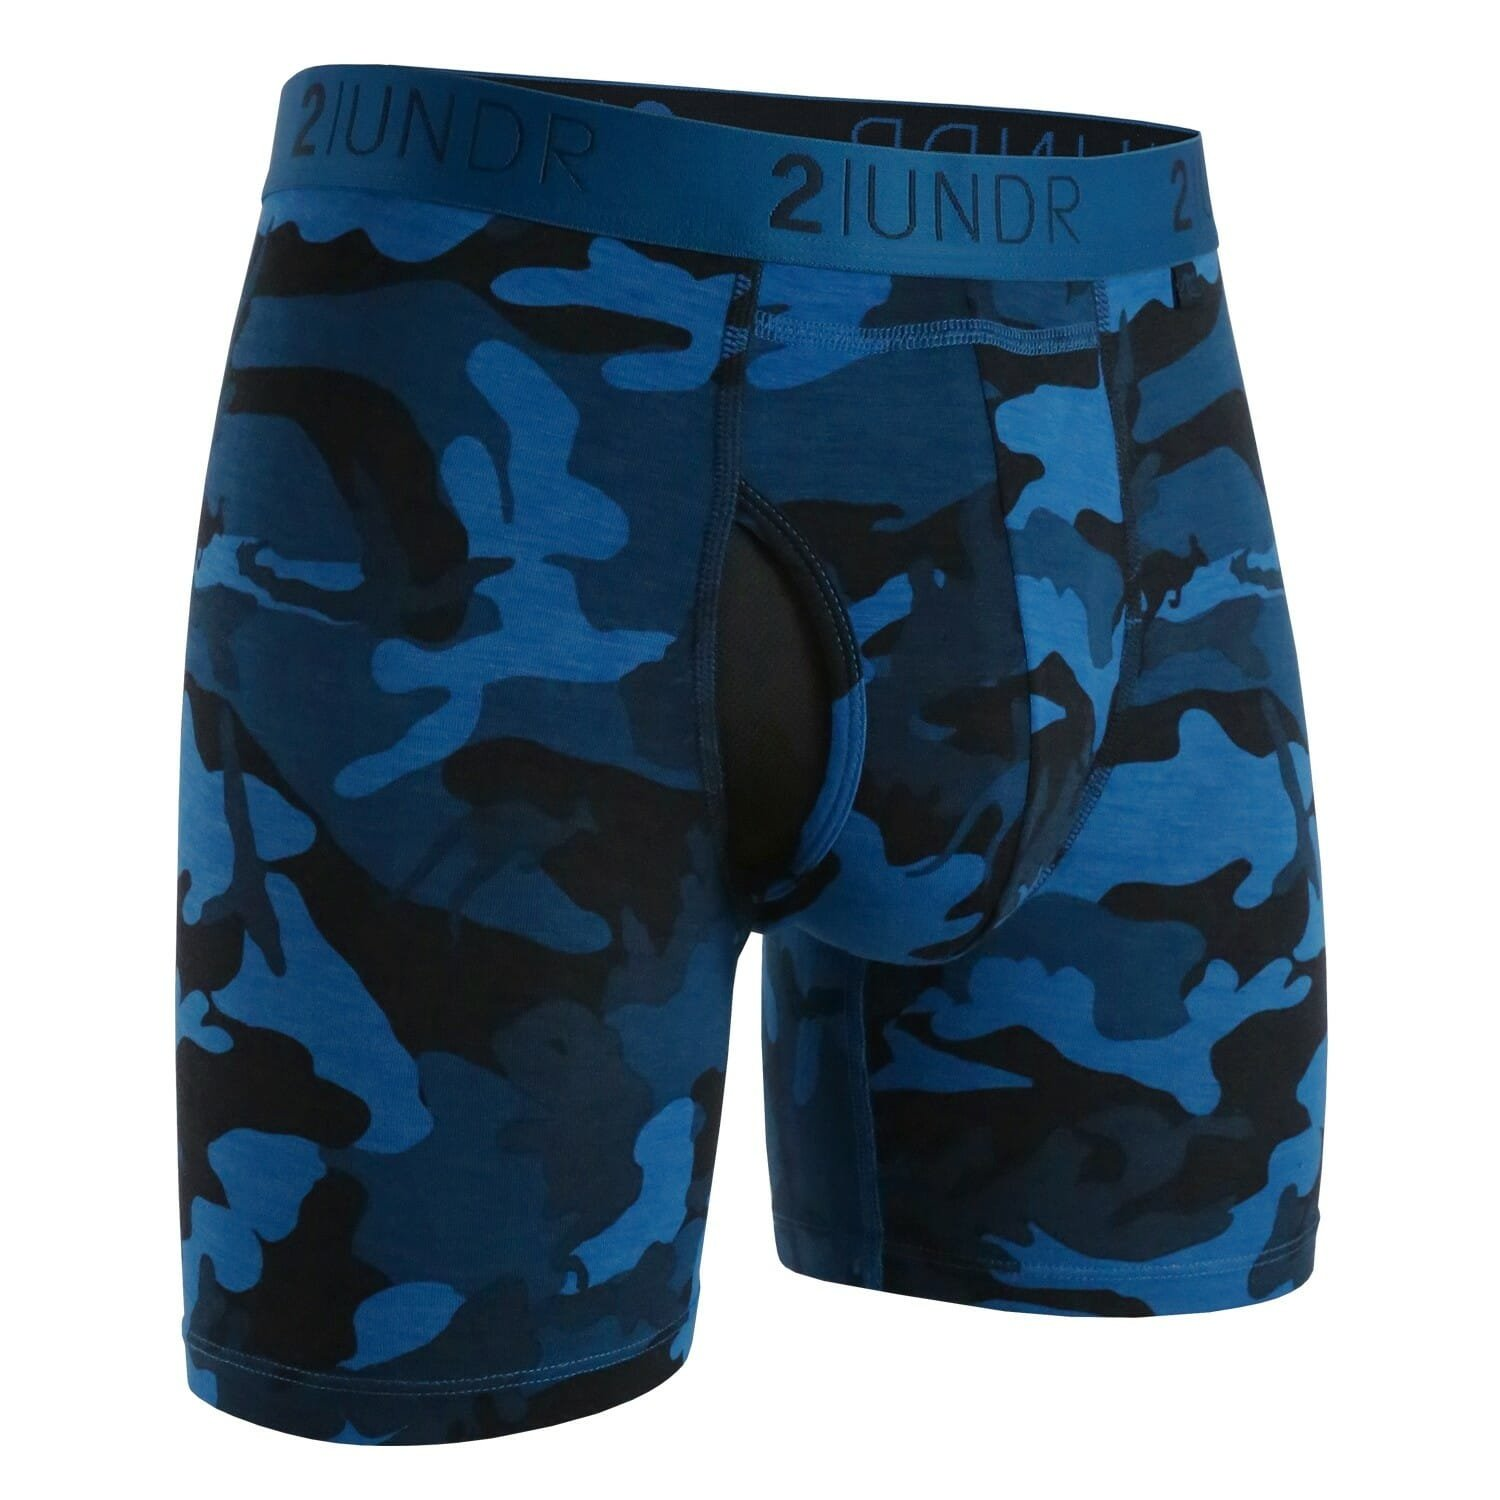 2UNDR Swing Shift Boxers 2U01BB